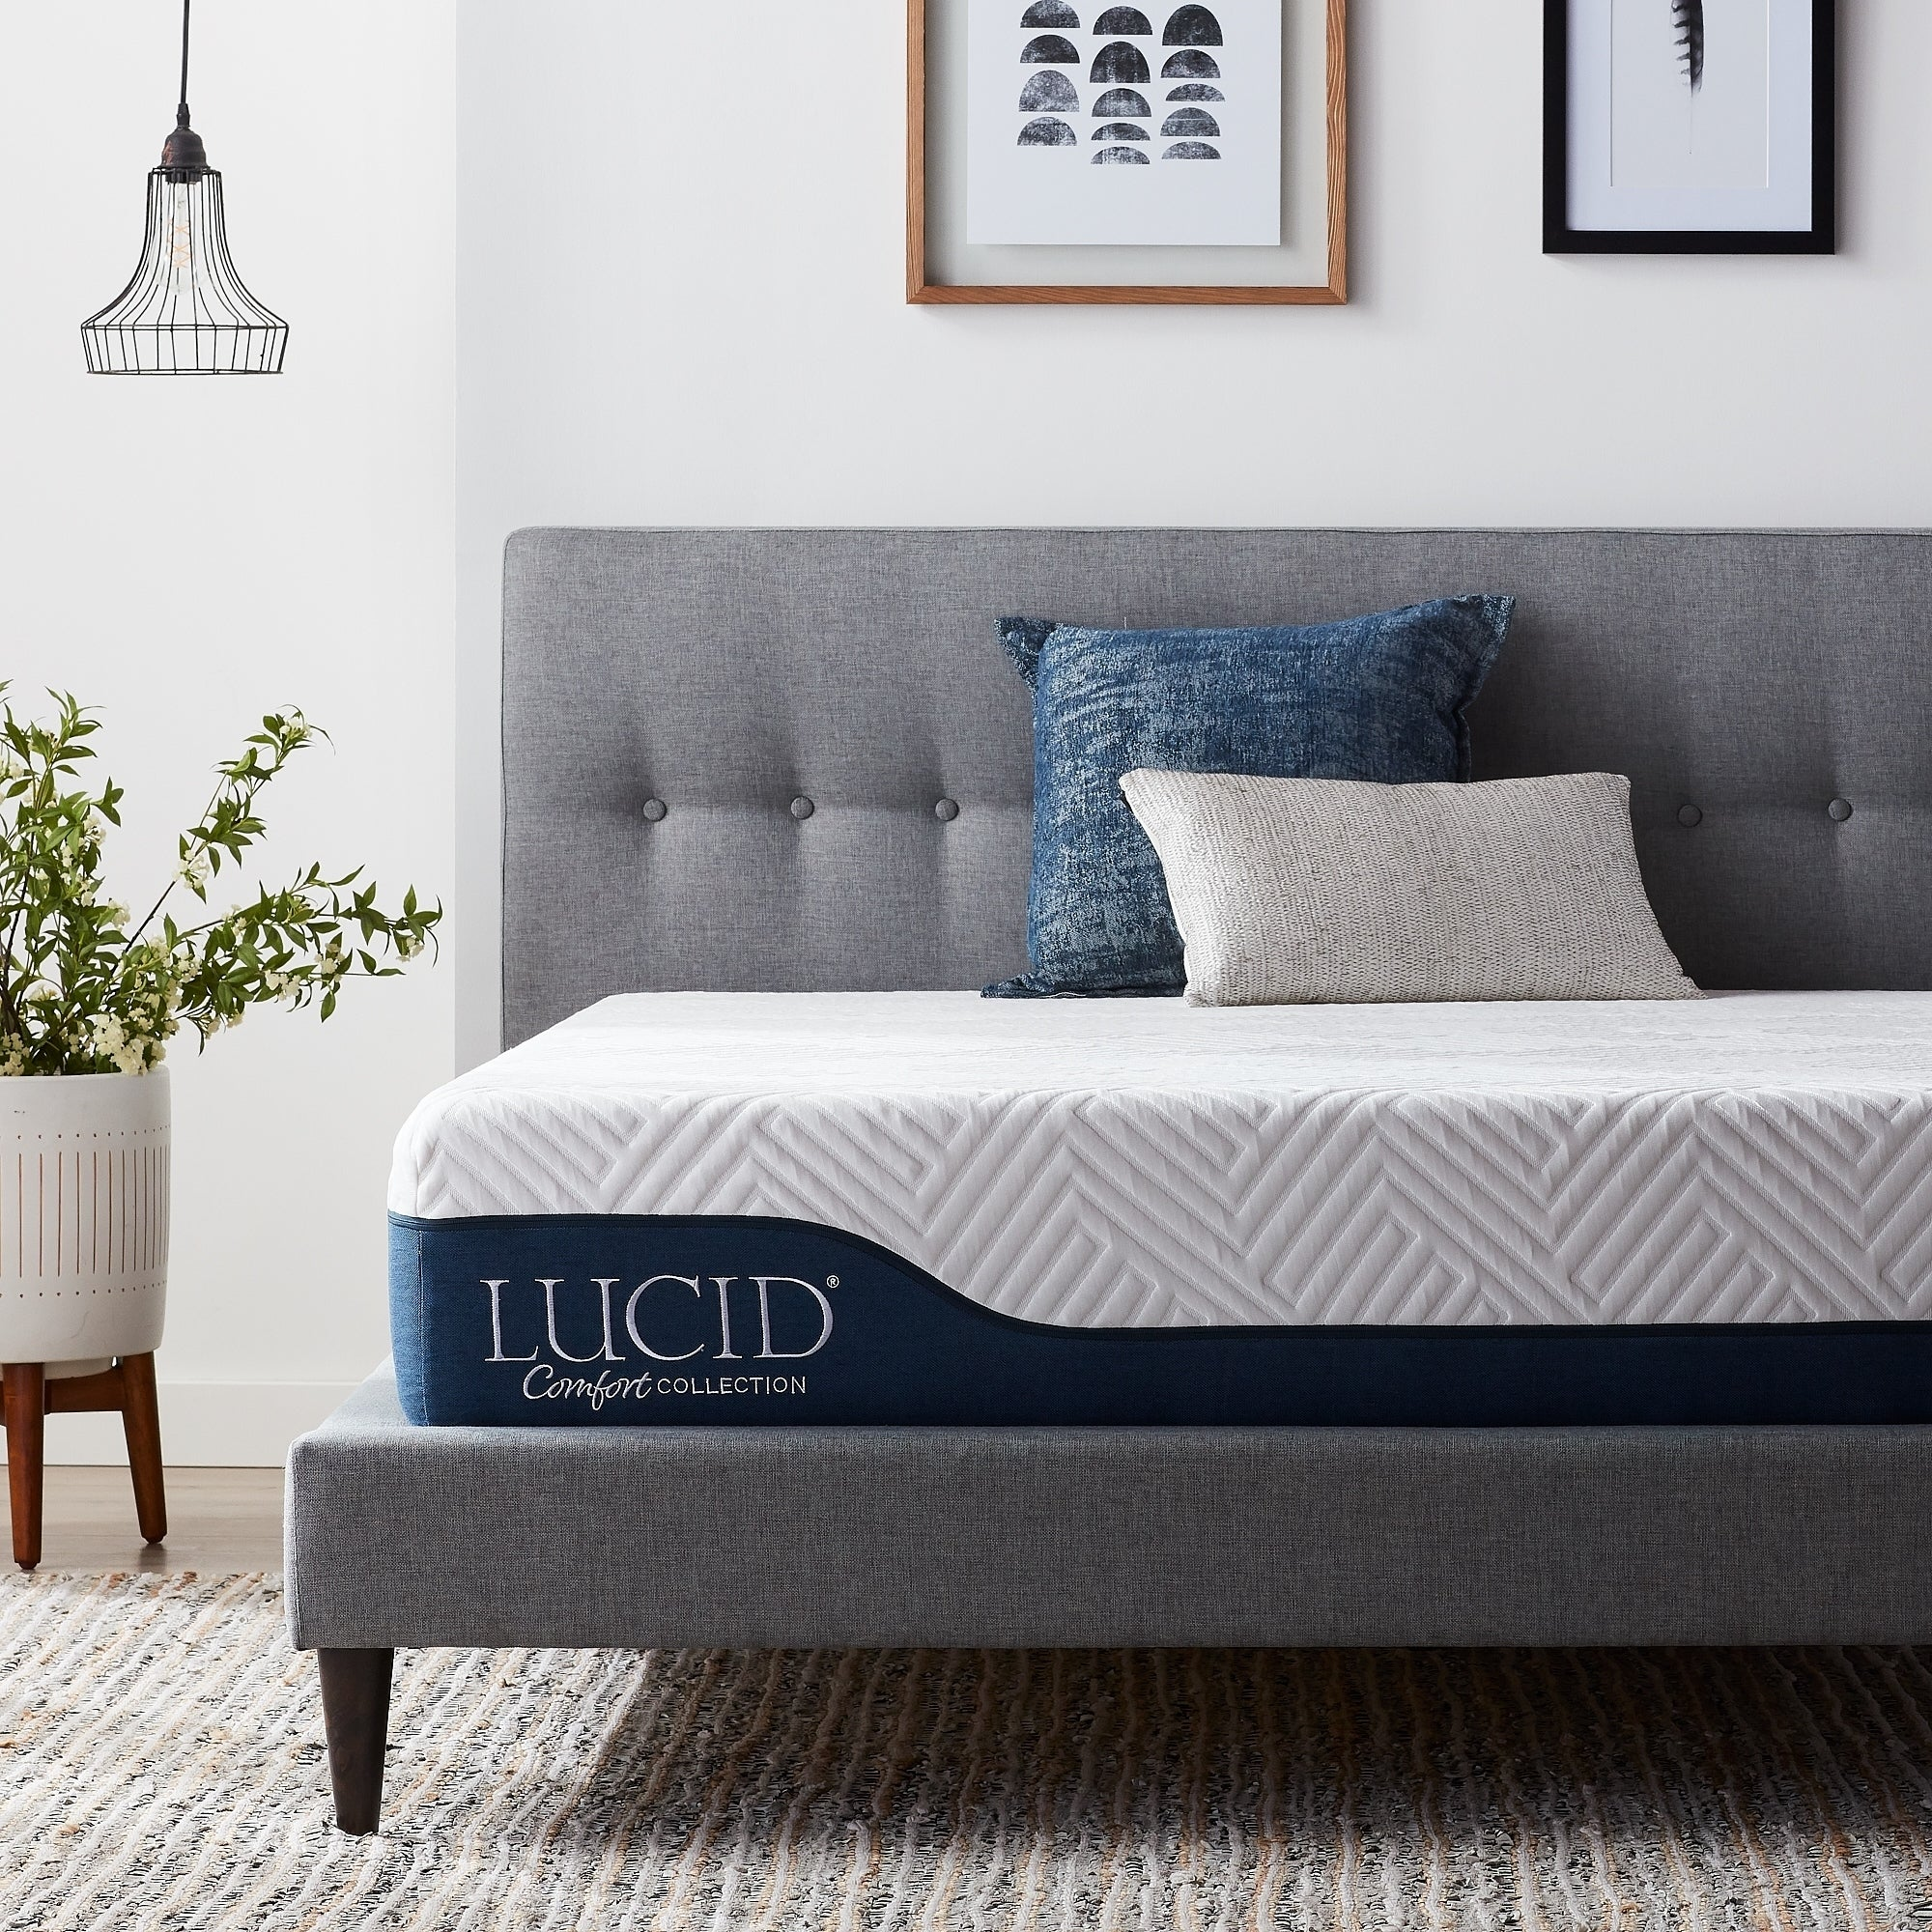 buy popular 3c546 76557 10-inch Gel and Aloe Vera Hybrid Memory Foam Mattress by LUCID Comfort  Collection